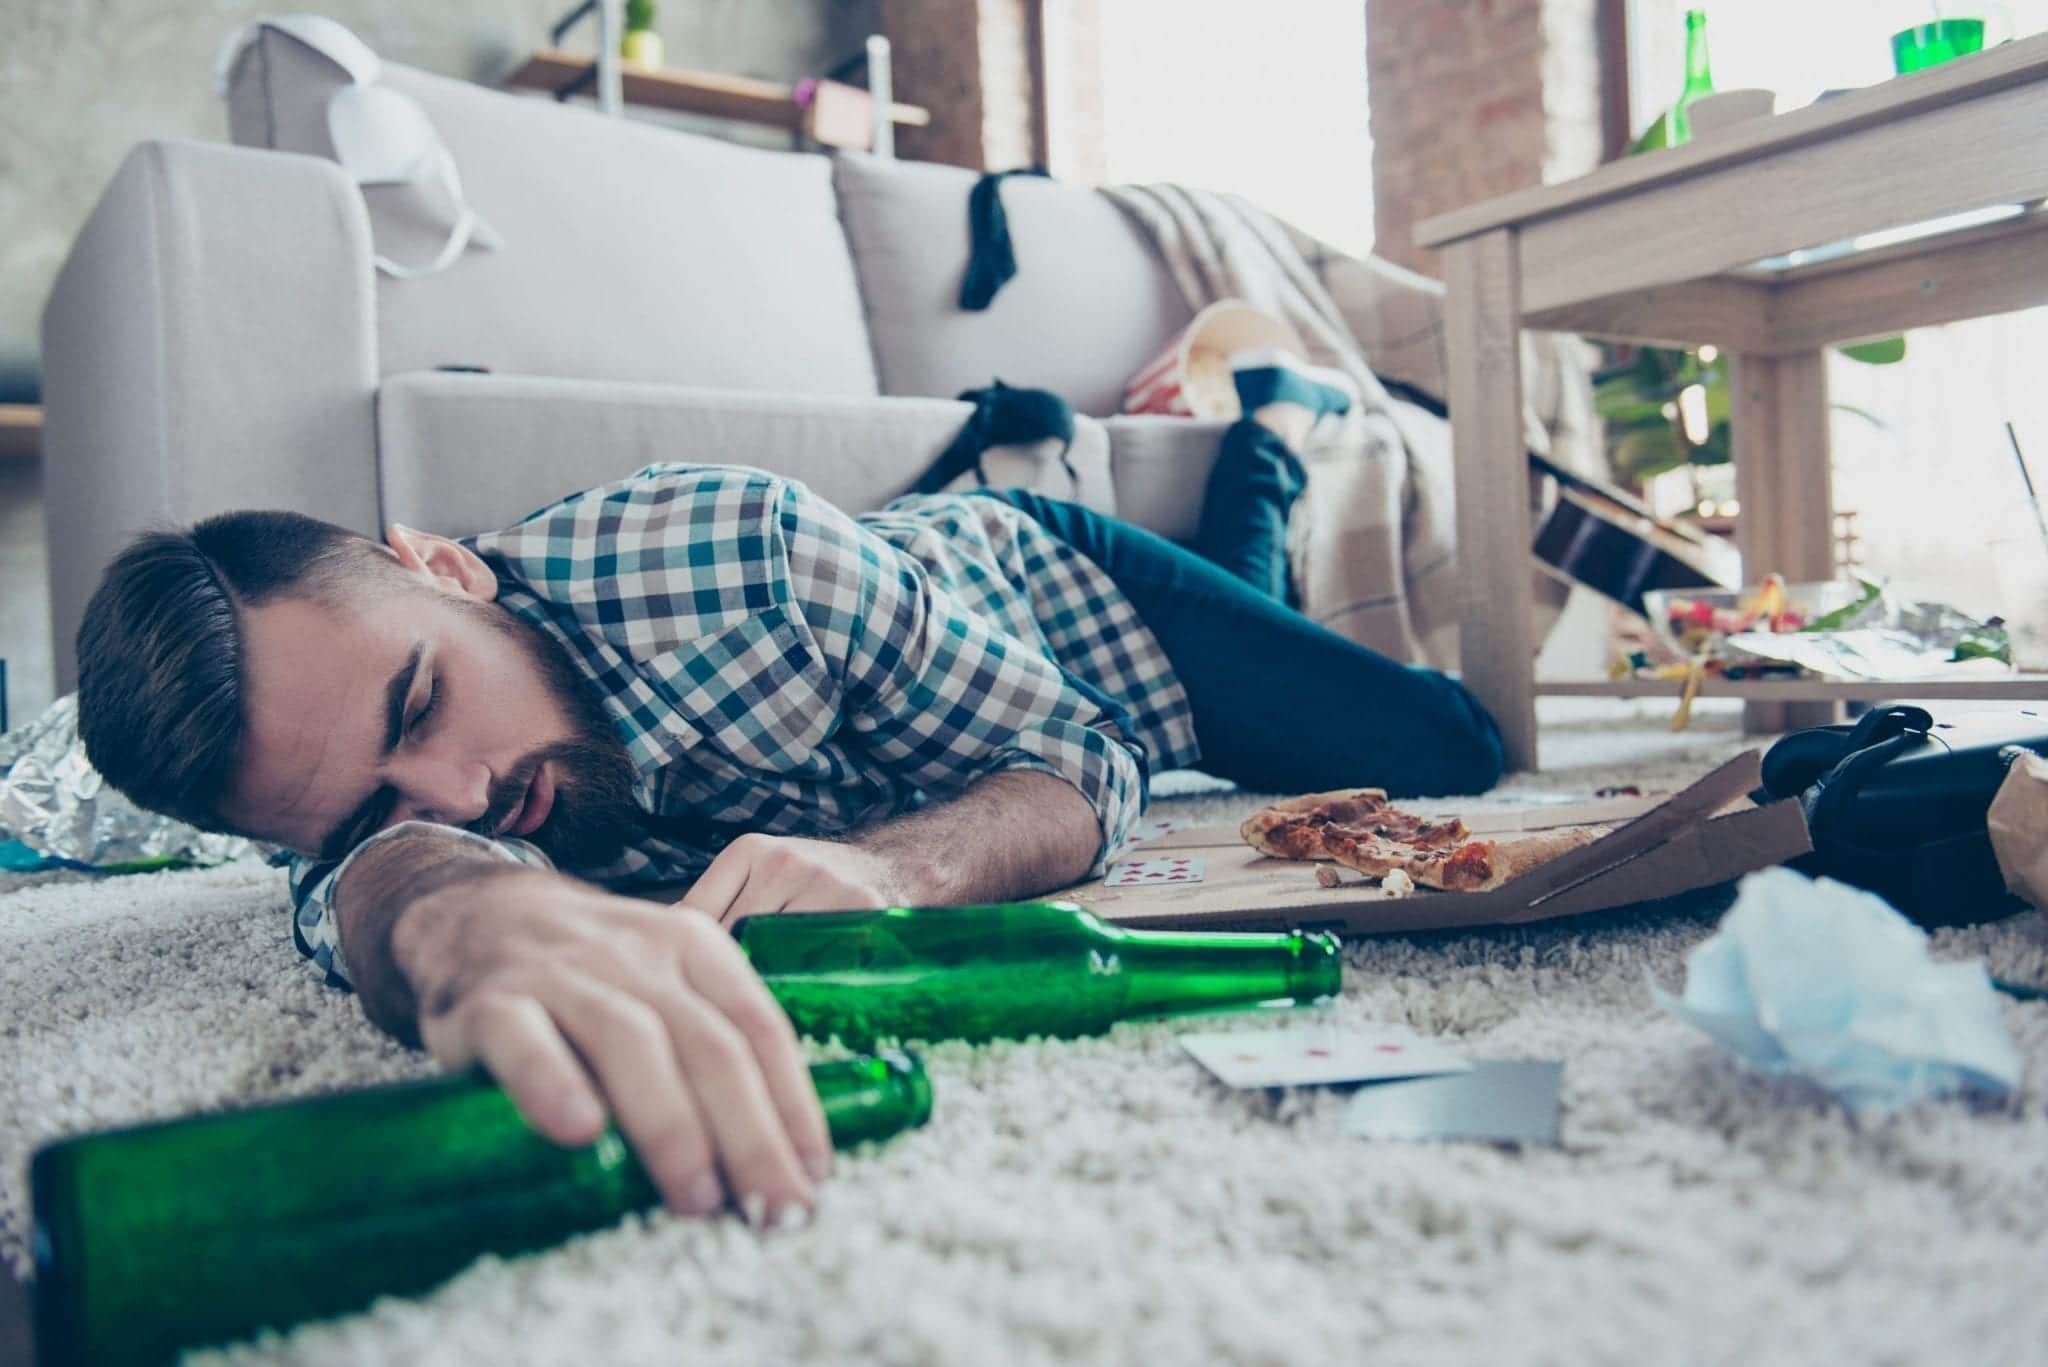 Tips to bring down hangover and its symptoms